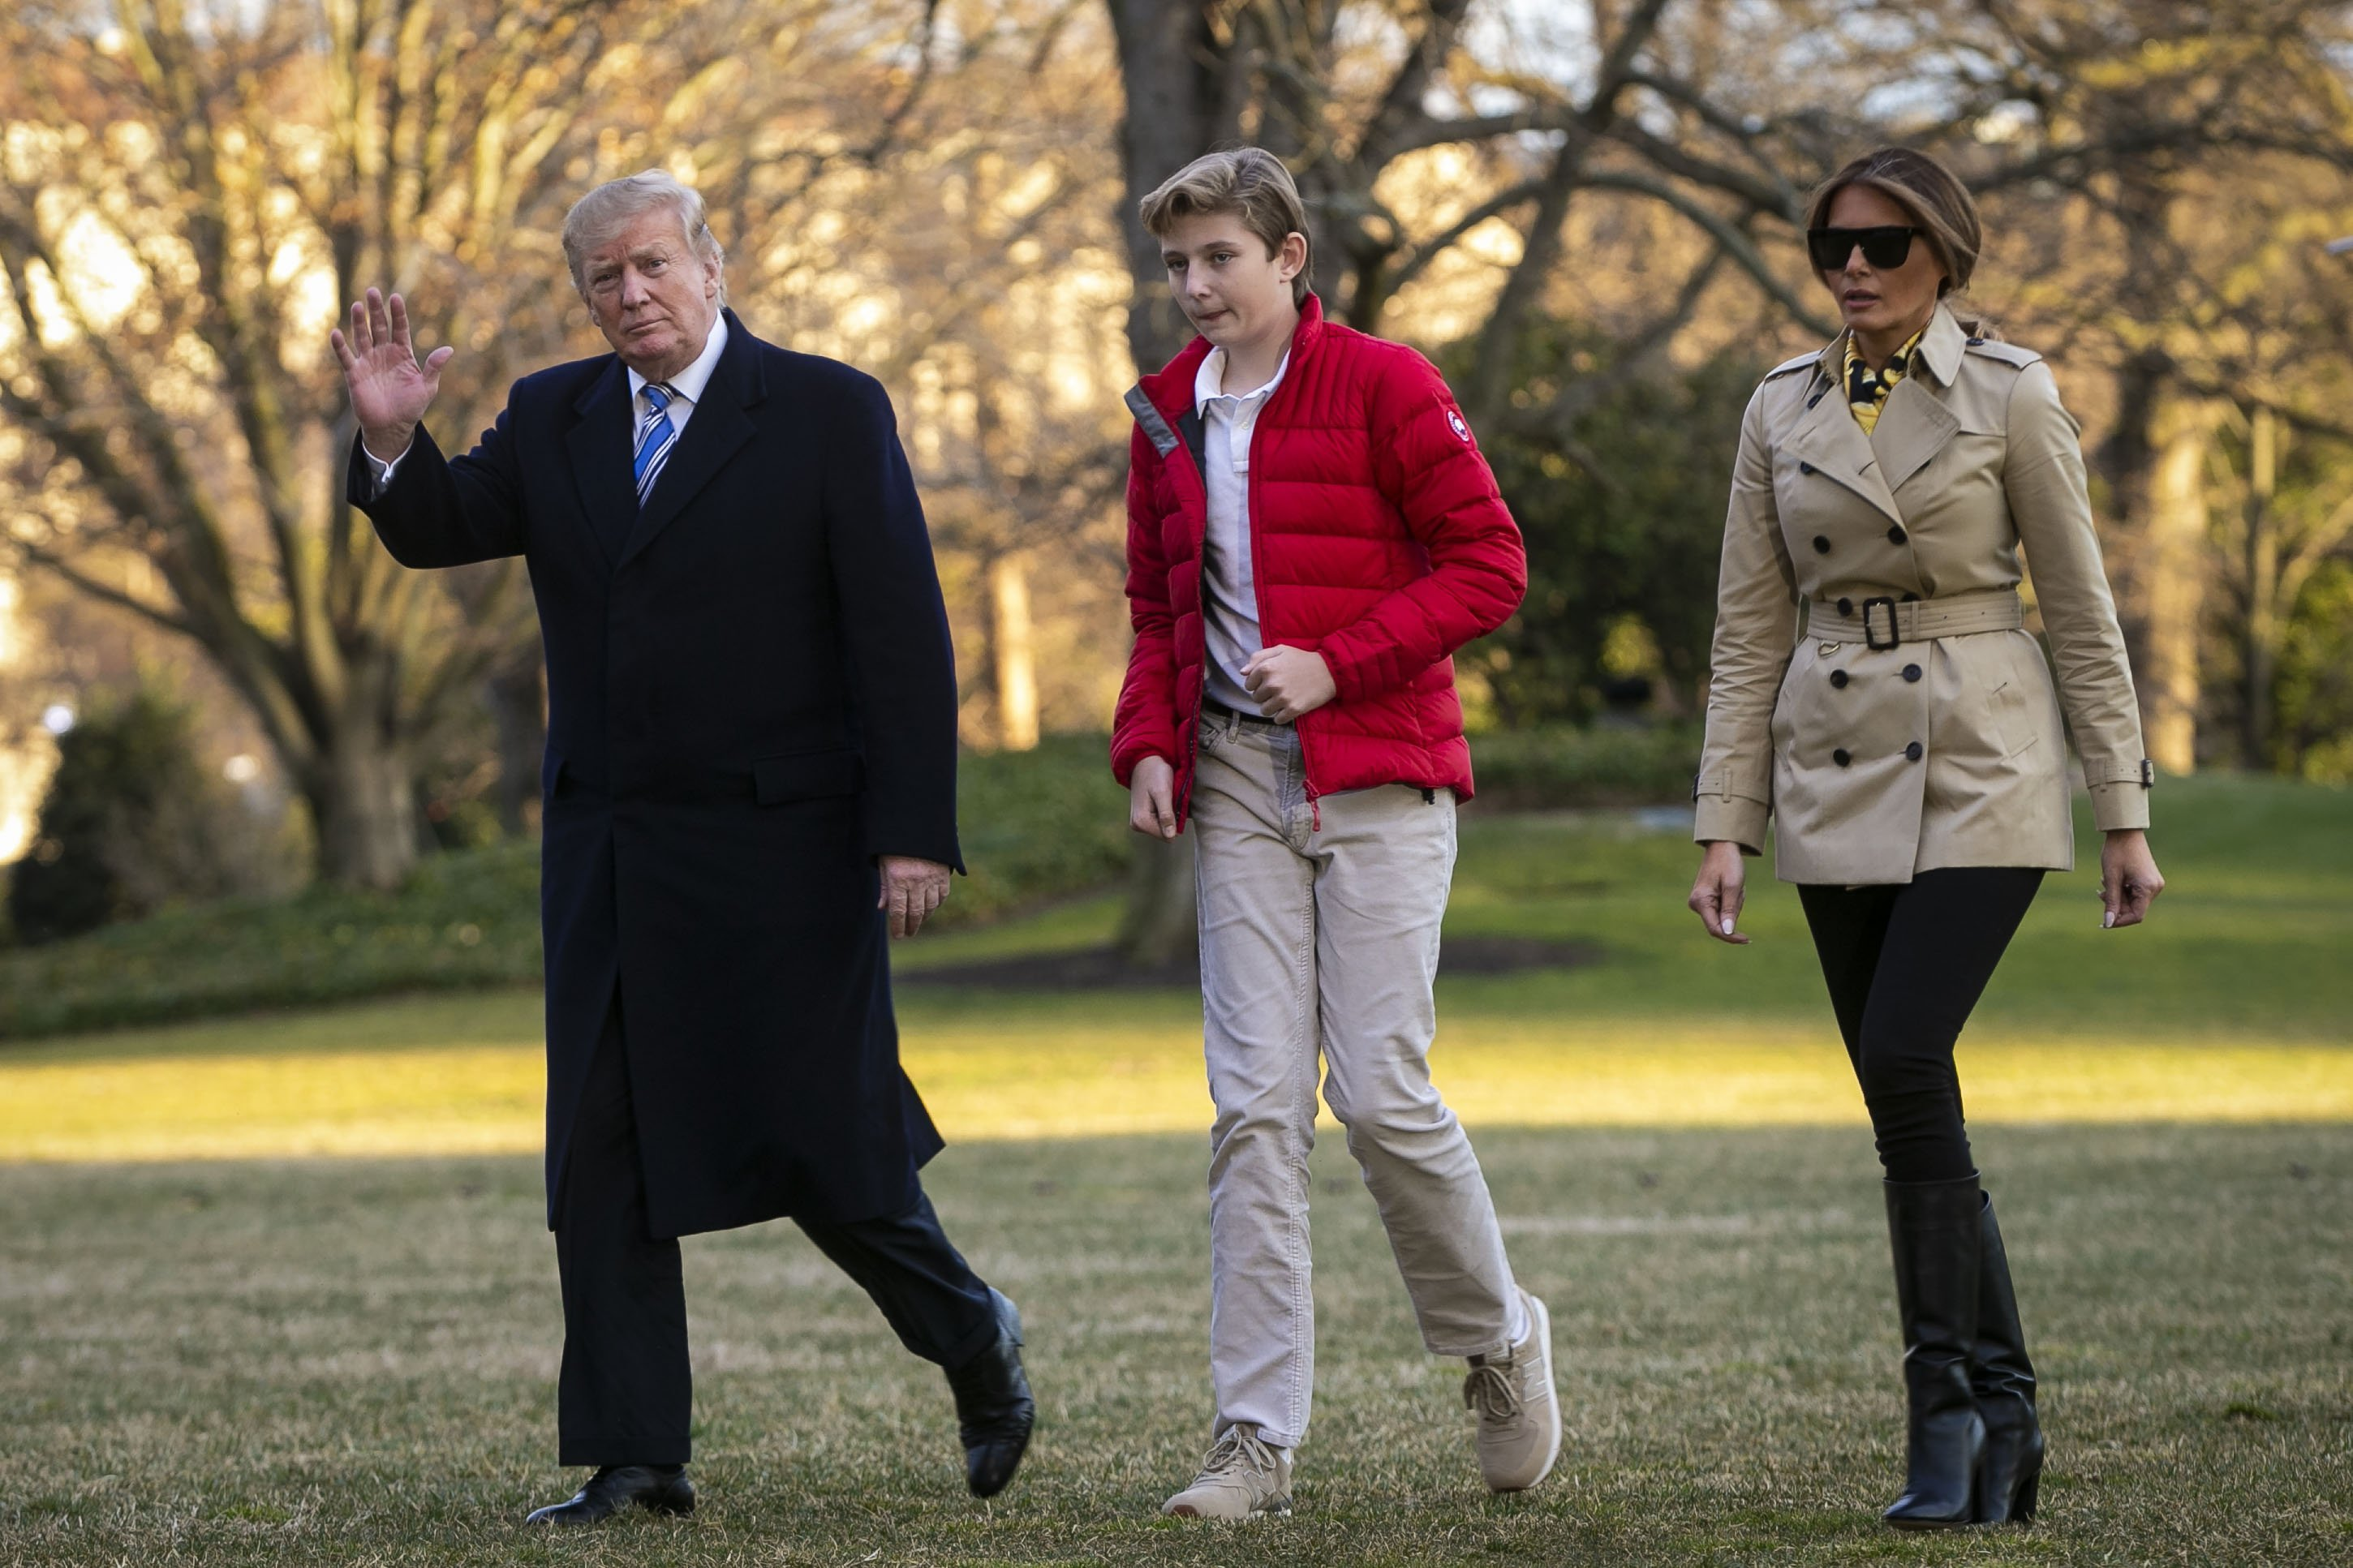 President Donald Trump, first lady Melania Trump, and their son Barron Trump, arrive on the White House from Mar-a-Lago, Florida on March 10, 2019. | Photo: GettyImages